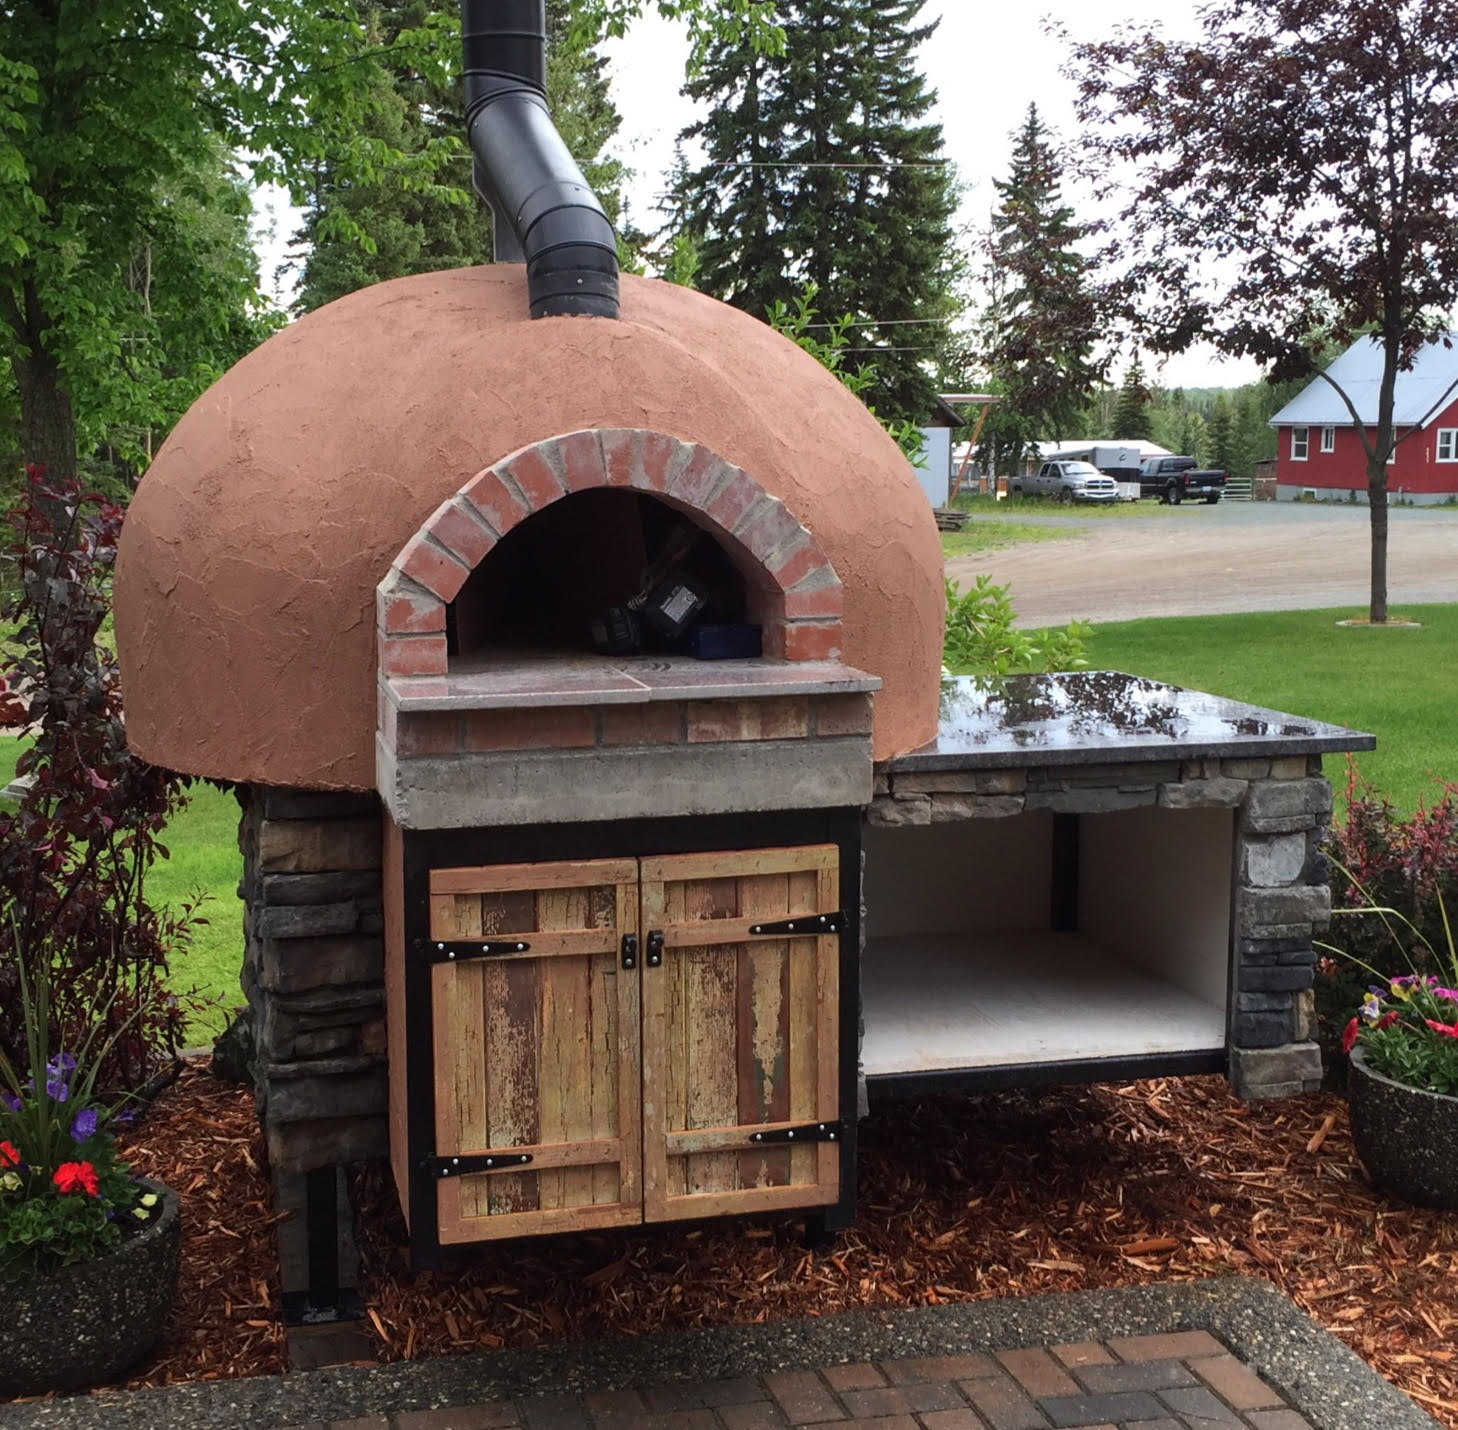 A Thermal Mass Pizza or Baking Oven